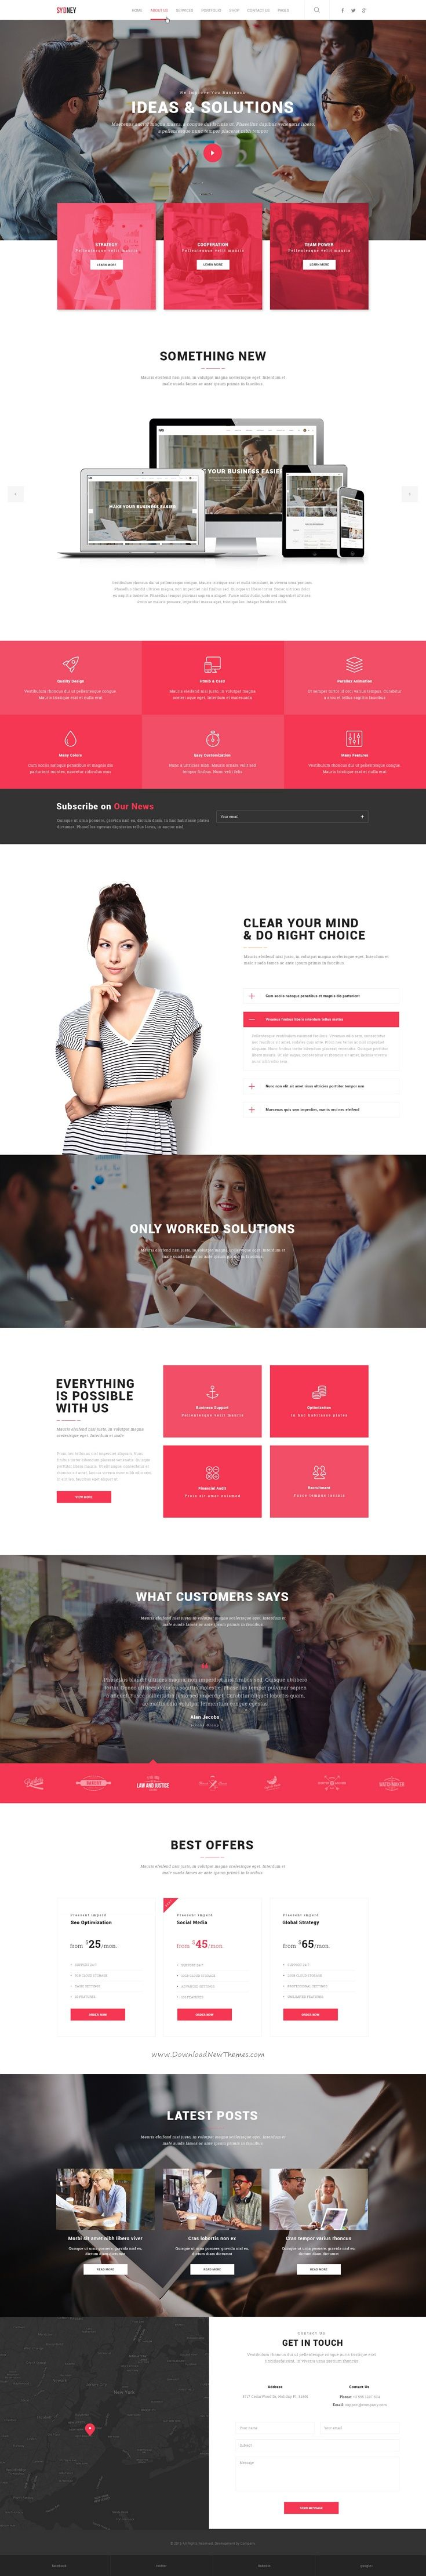 Sydney is a clean, flat, pixel perfect and modern PSD template suitable for any type of Marketing Website. It's designed according to the latest trends.